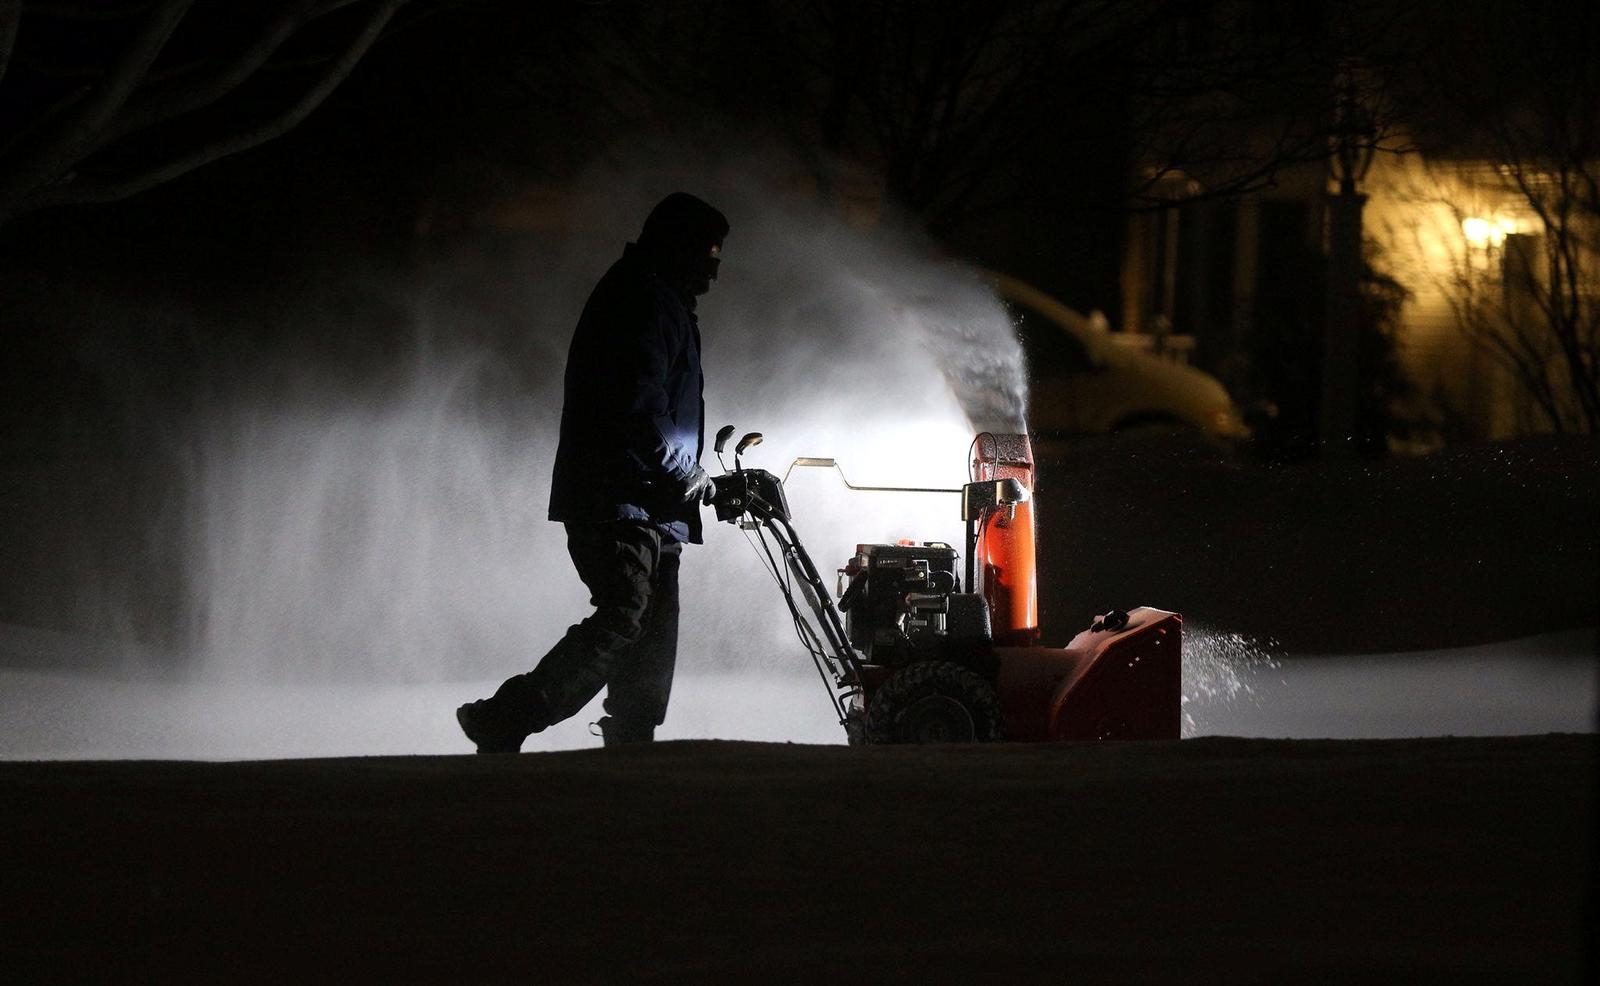 Roger Hake gets an assist from his truck lights as he clears snow from his driveway before the sun comes up in Webster, near Rochester, New York, U.S. February 16, 2021. Photo: Jamie Germano/Rochester Democrat and Chronicle/USA Today Network via REUTERS